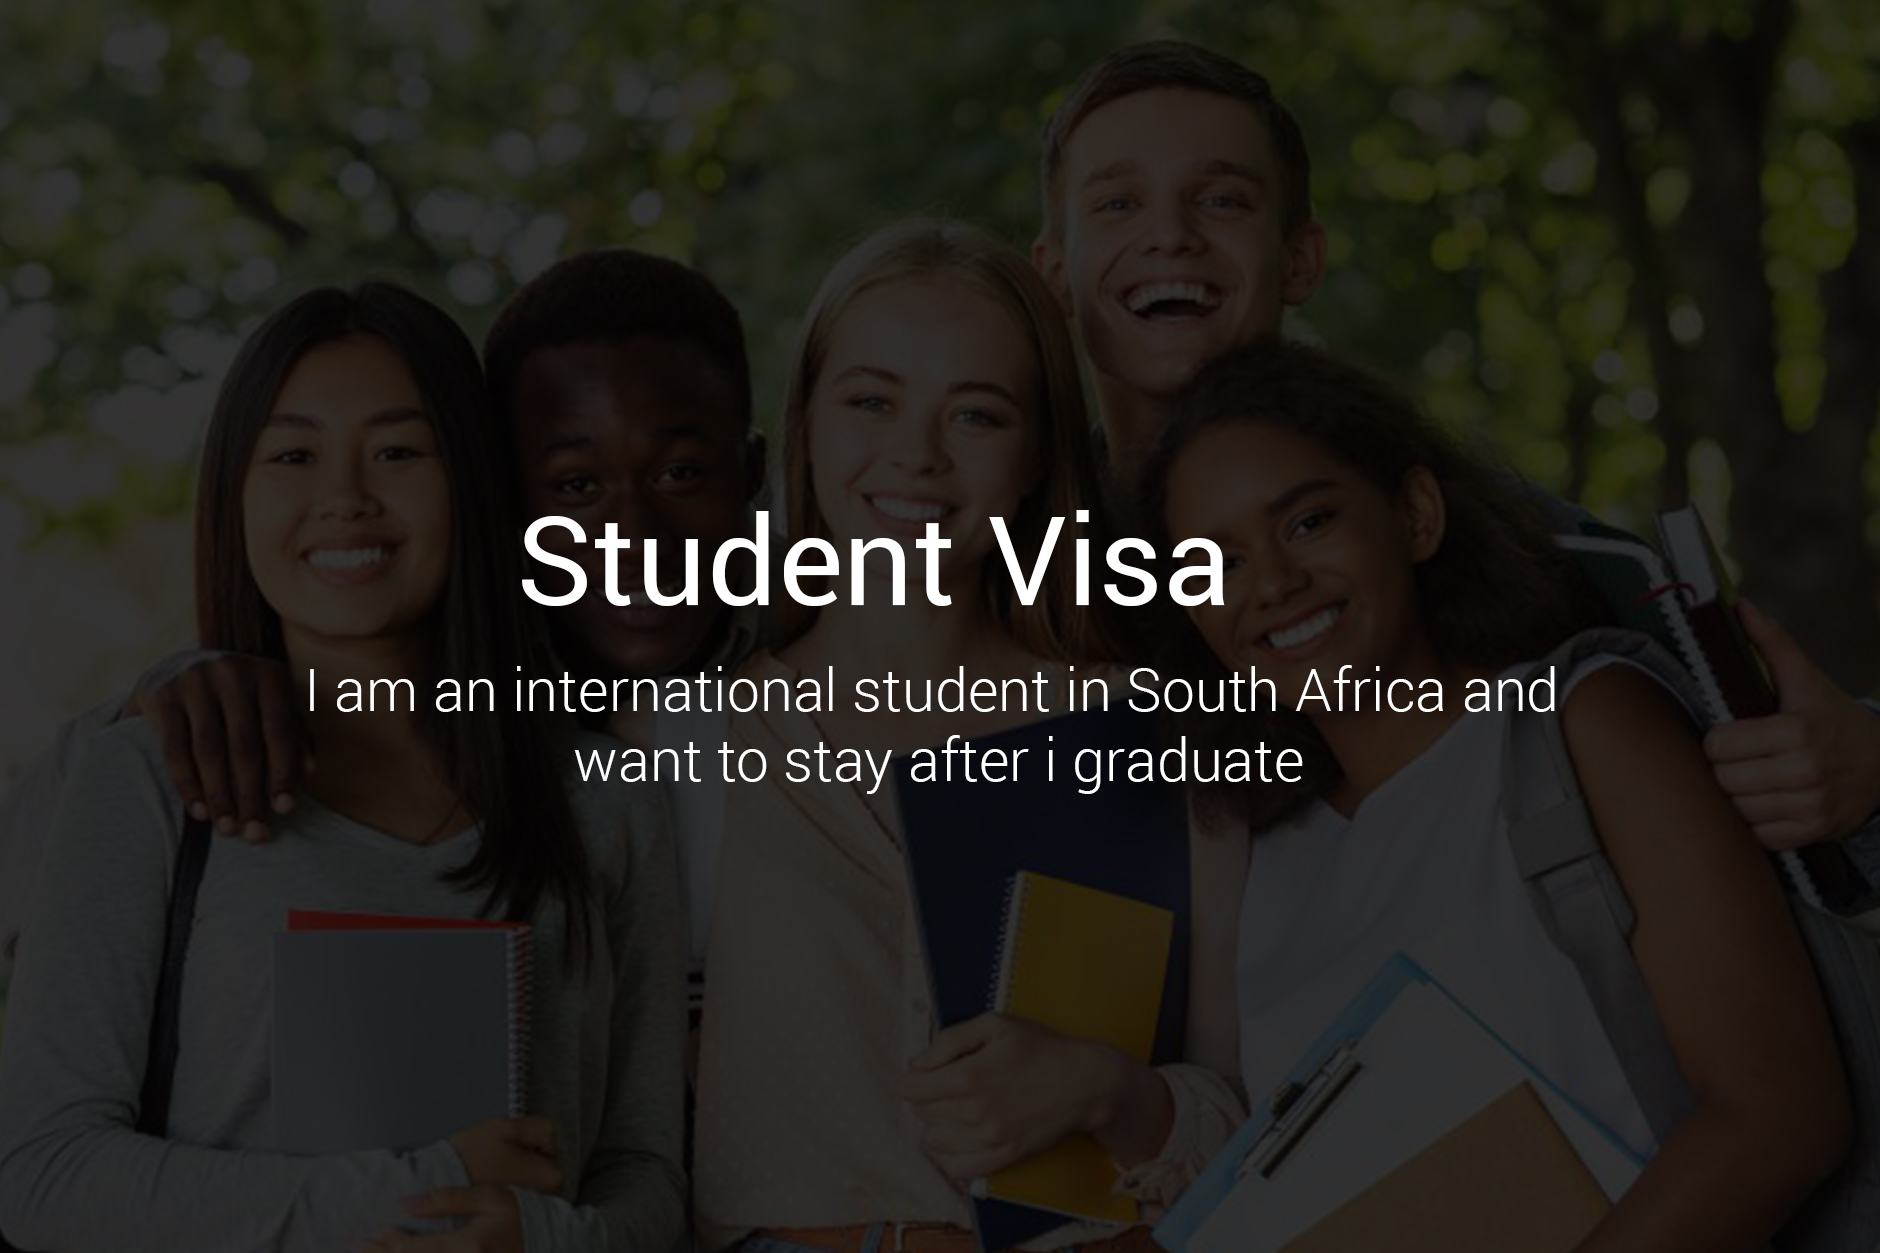 SOUTH AFRICAN STUDENT VISA